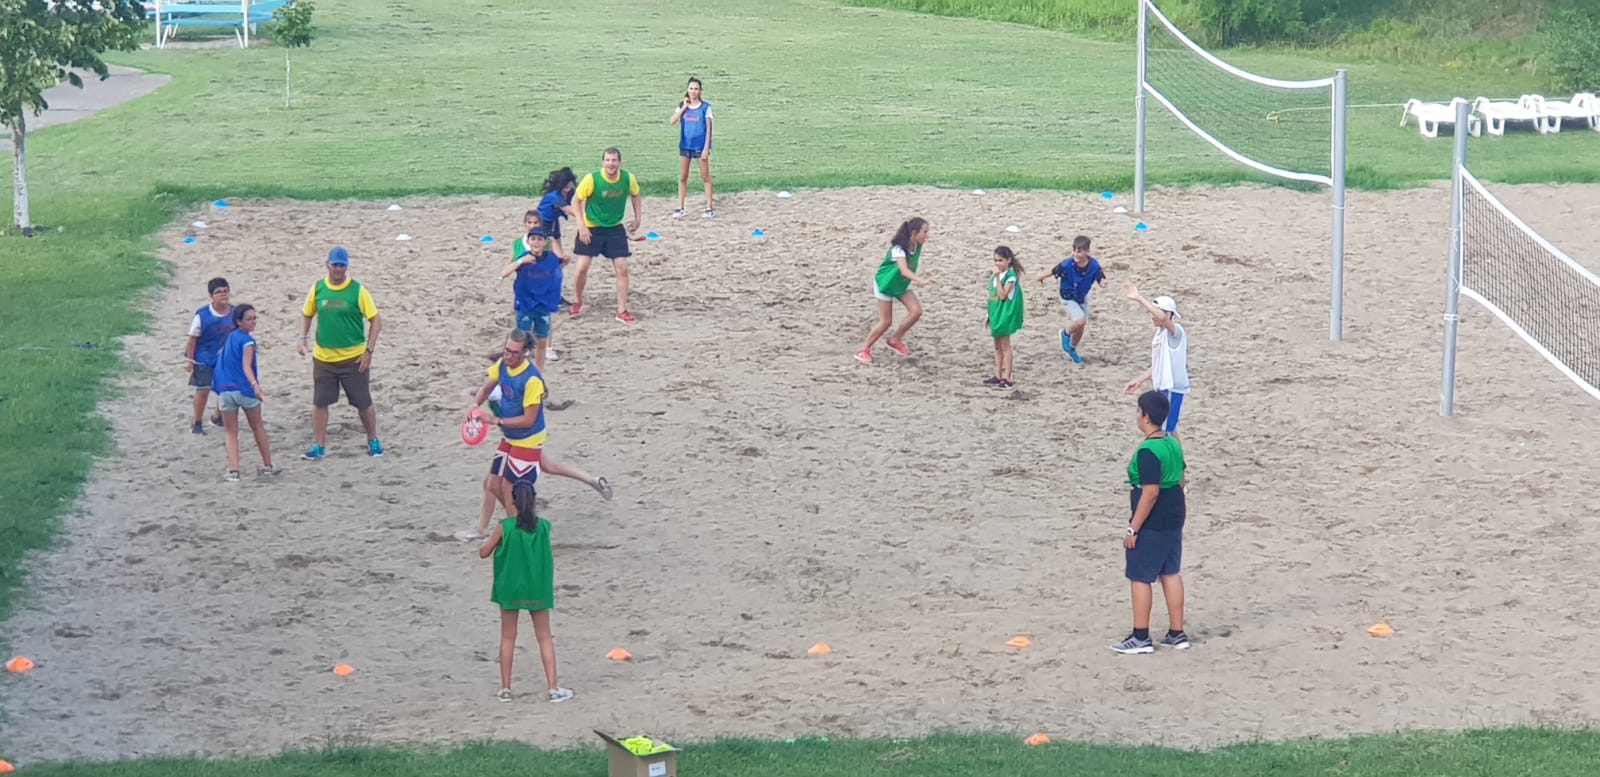 Z camp, Day 17 - Frisbee play on the sandy playground, 2 teams